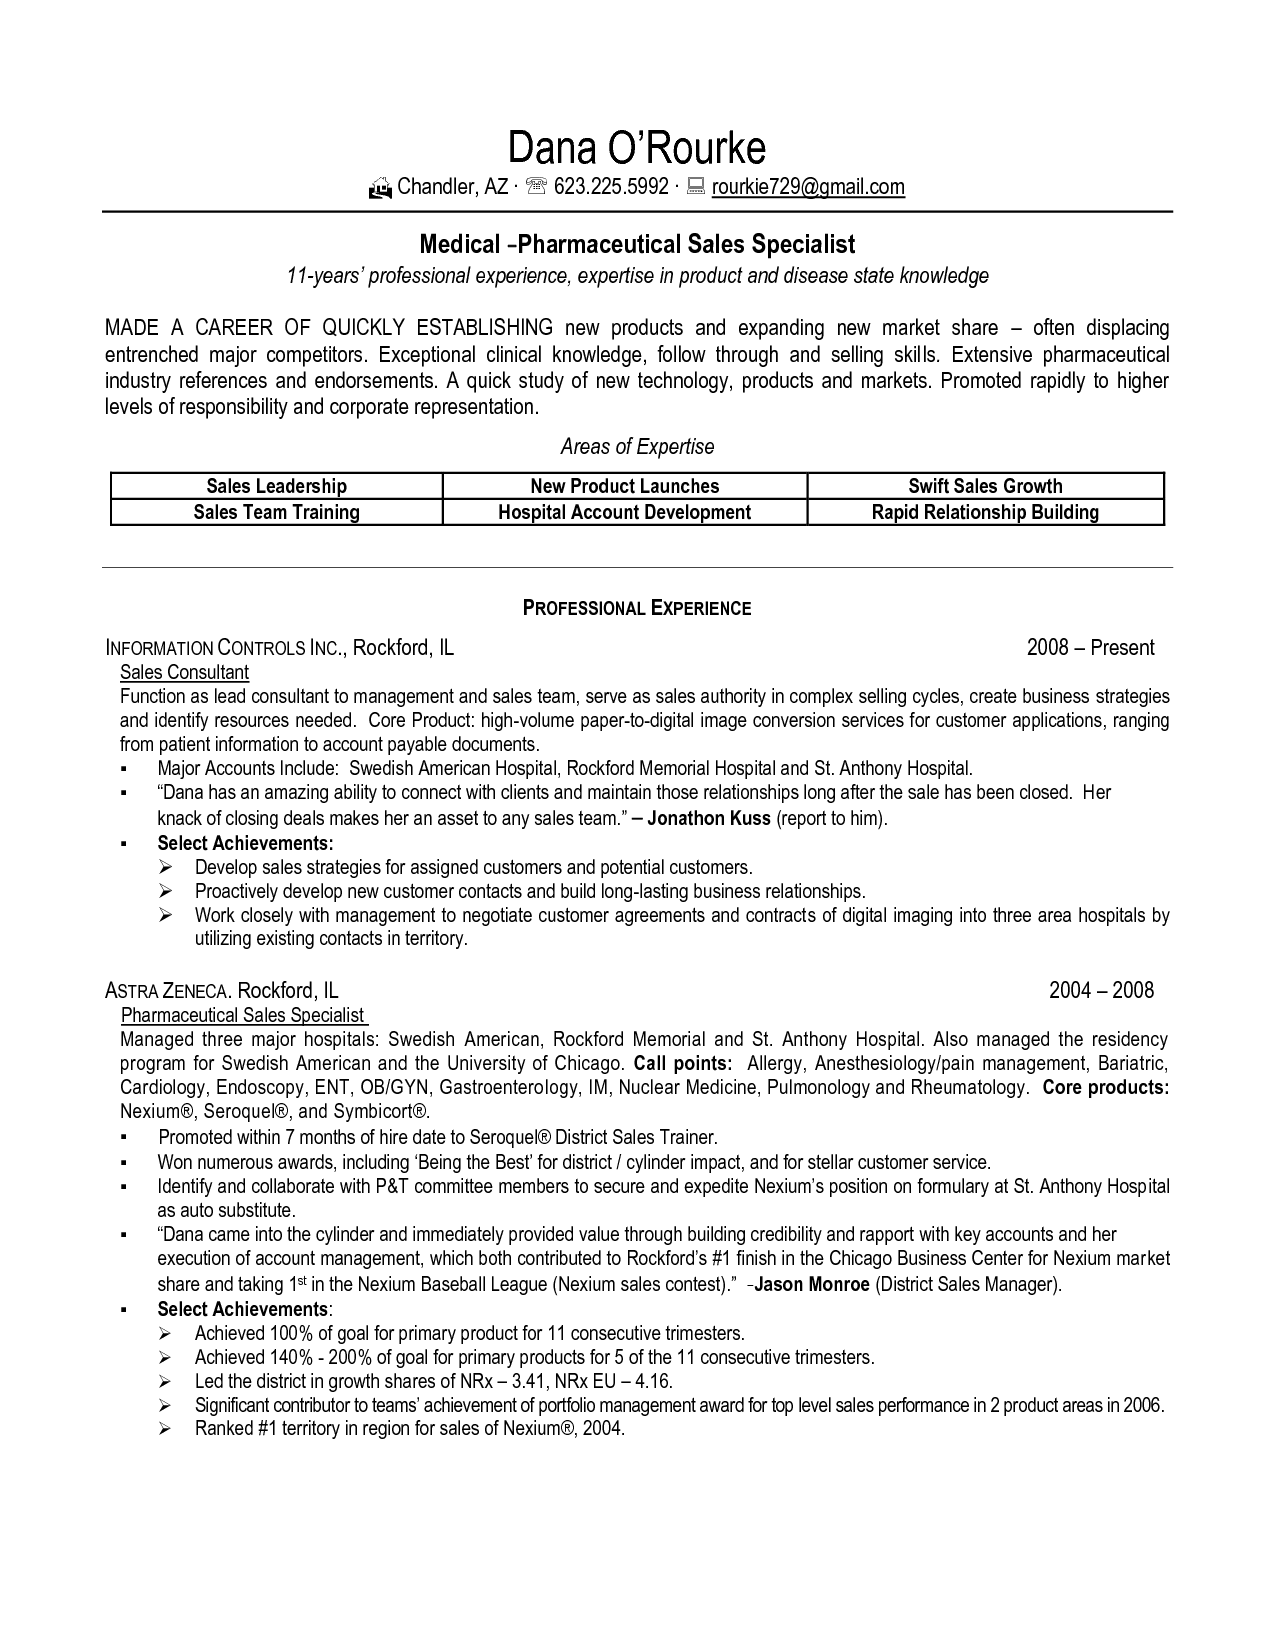 Sample Resume For Pharmaceutical Industry Sample Resume For Pharmaceutical  Industry Sample Resume For Pharmaceutical Sales Sample  Pharmaceutical Sales Resume Sample